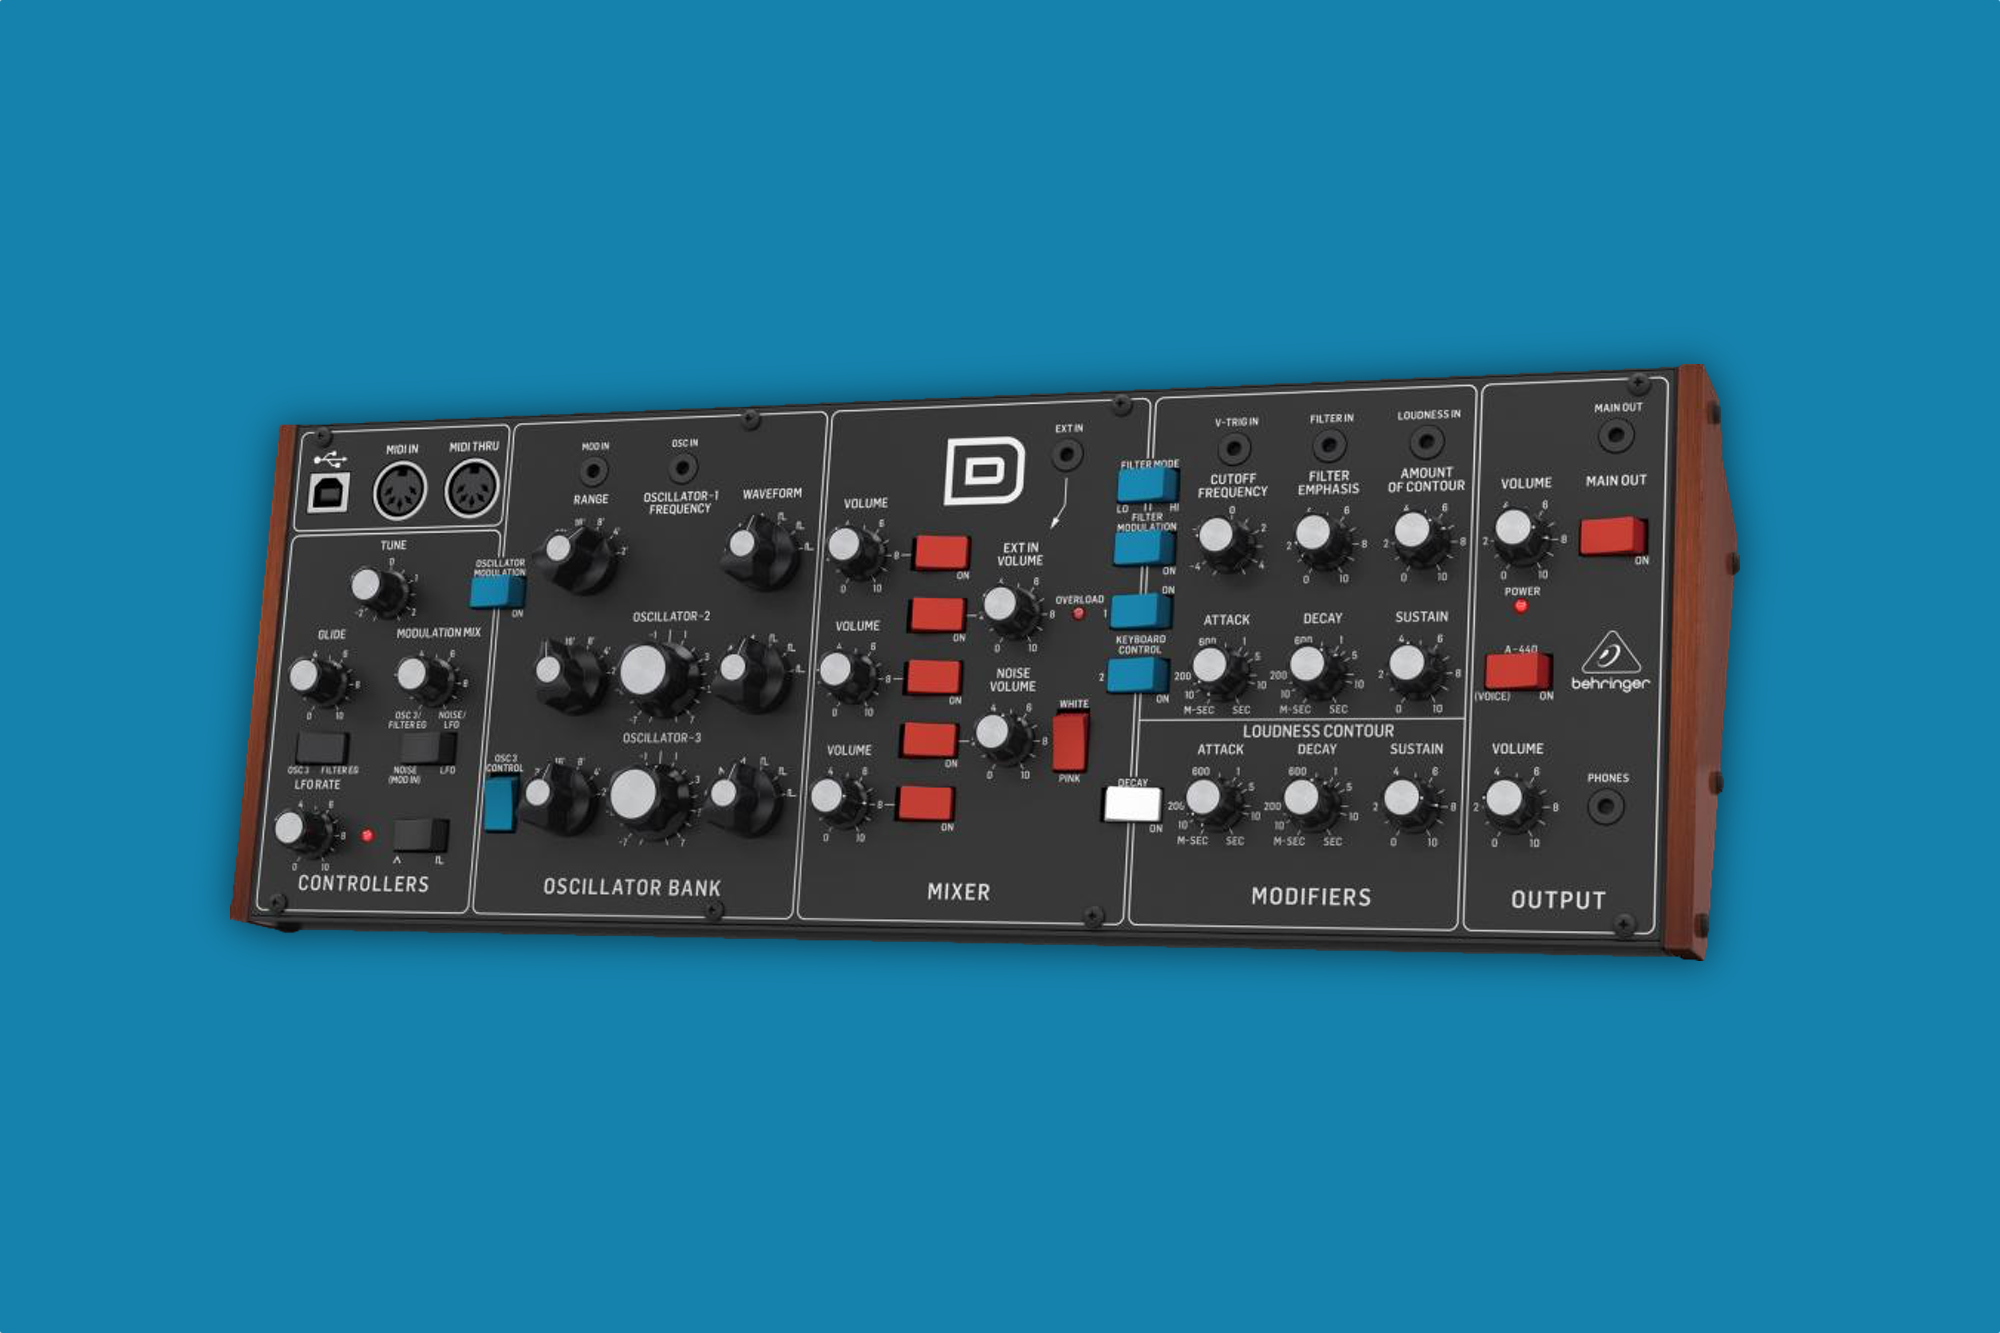 Behringer shows off its $400 Minimoog clone for Eurorack